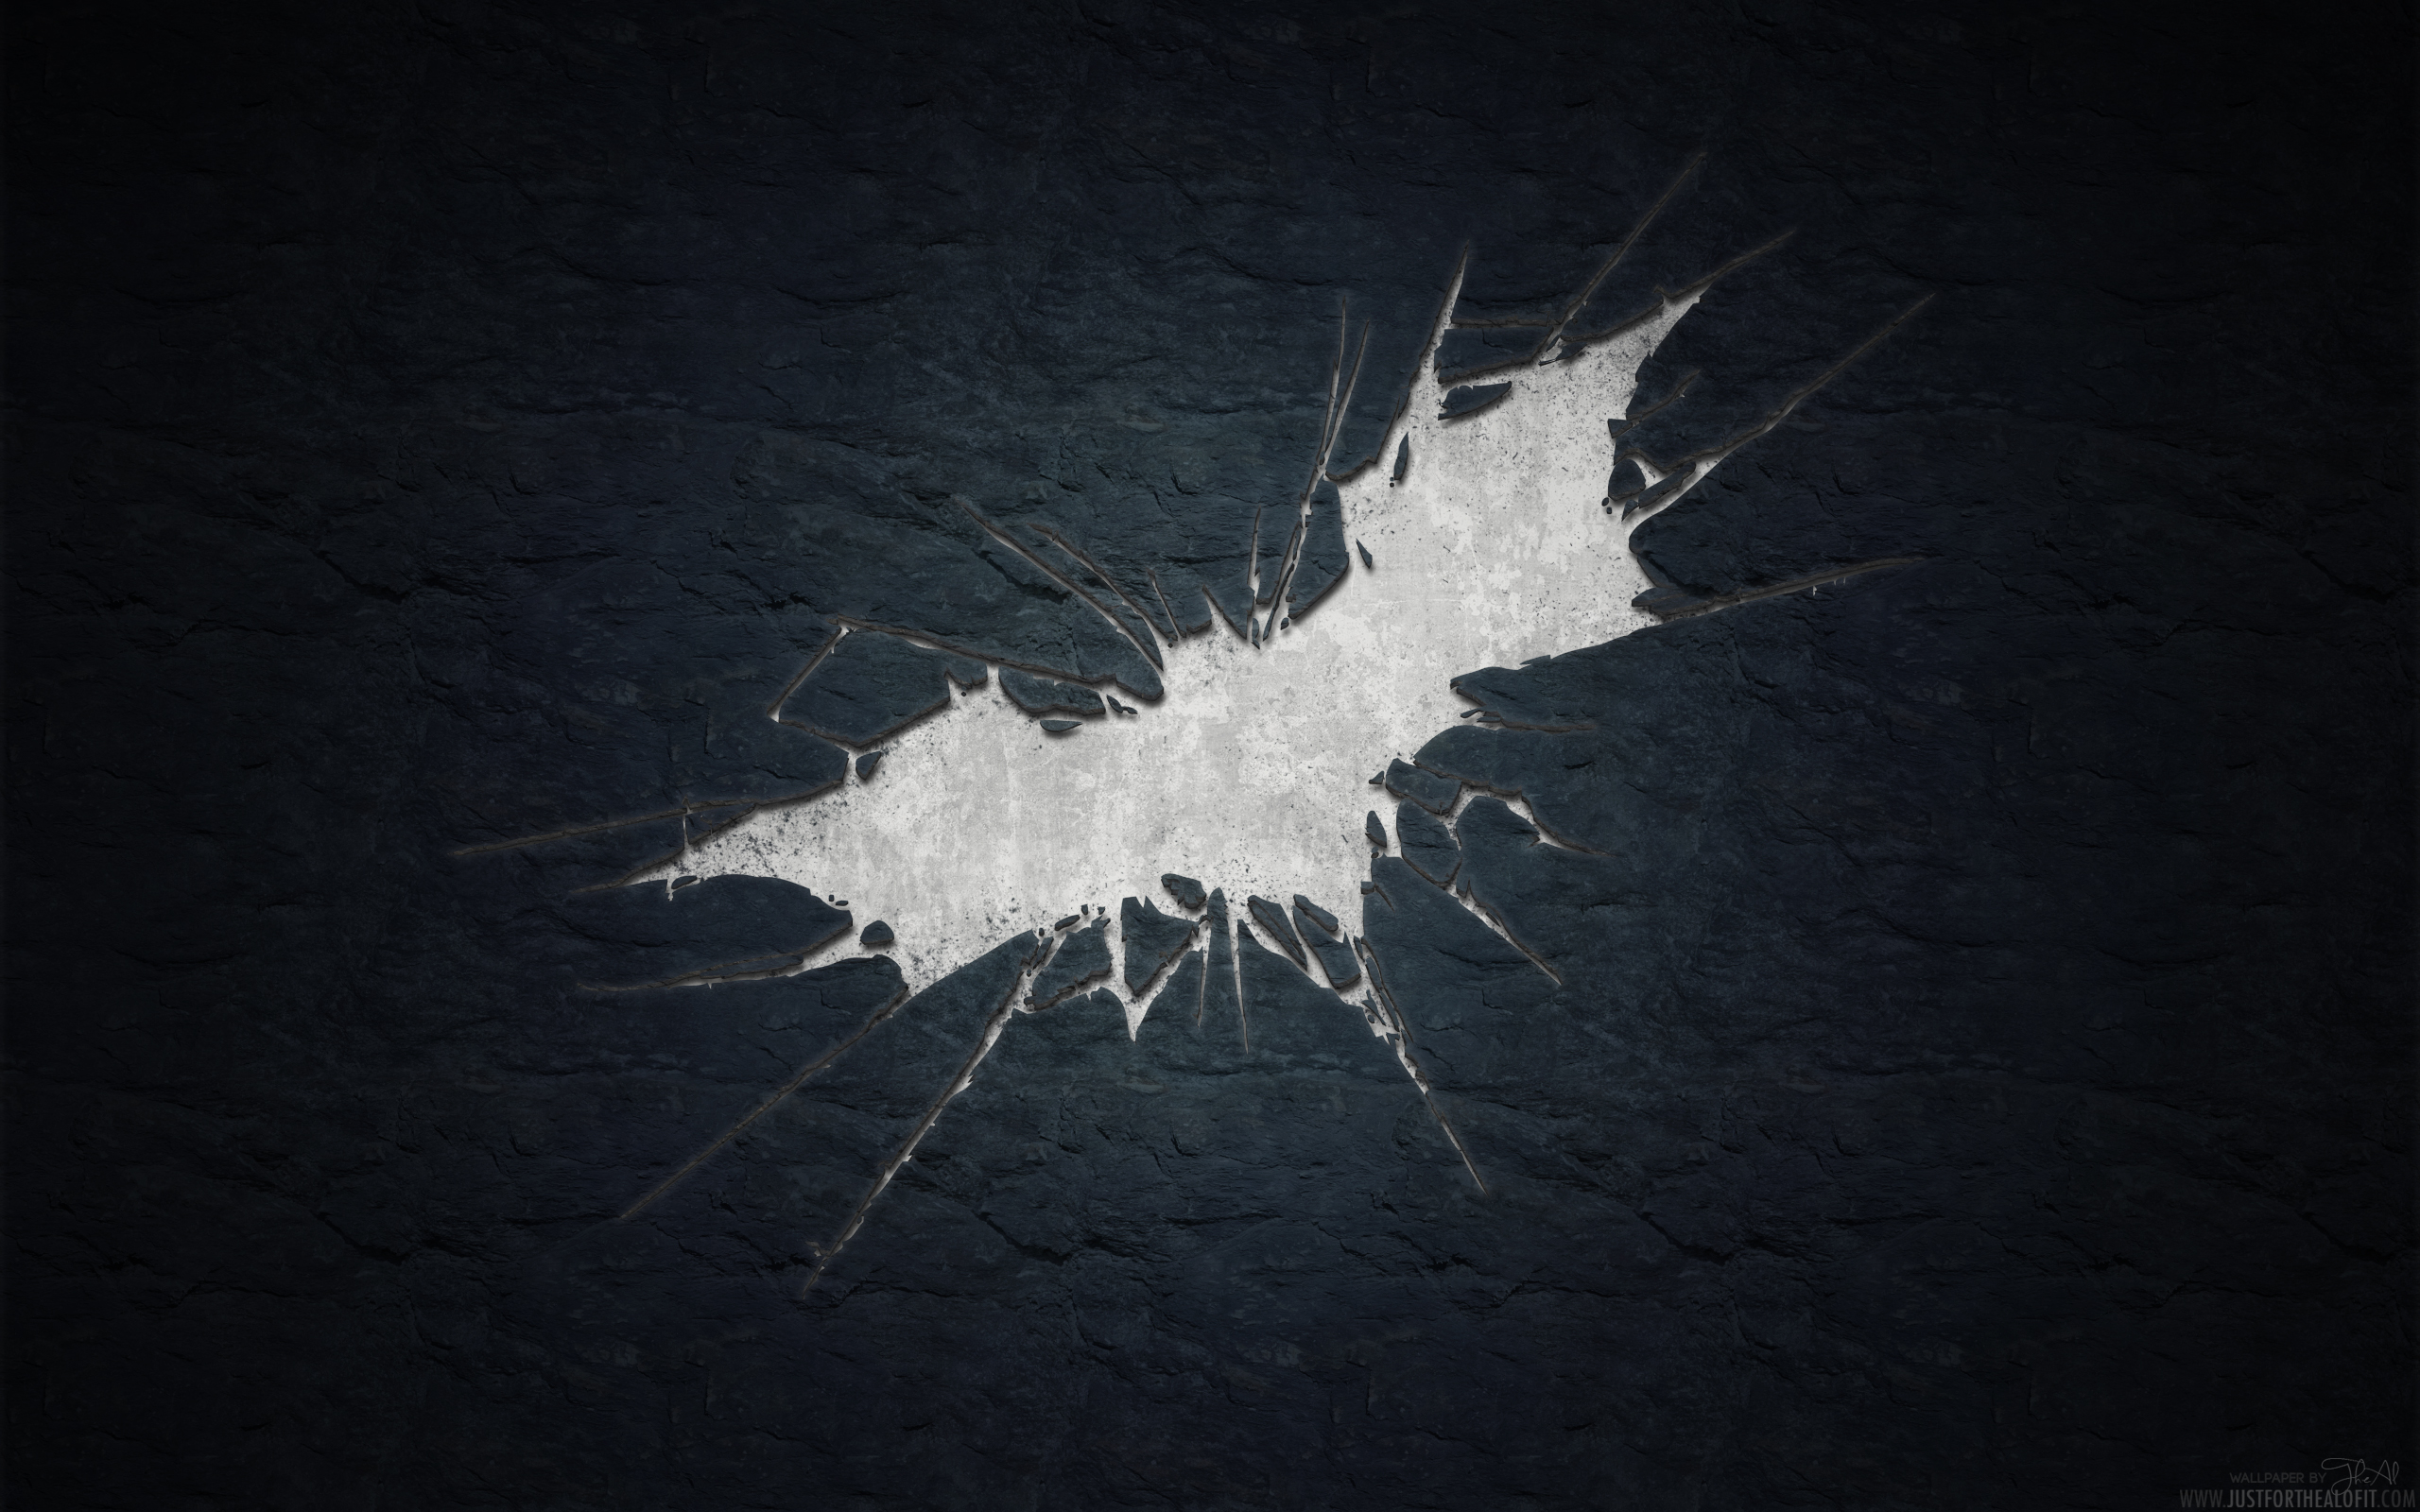 The Dark Knight Rises Wallpaper Set Awesome Wallpapers 2560x1600